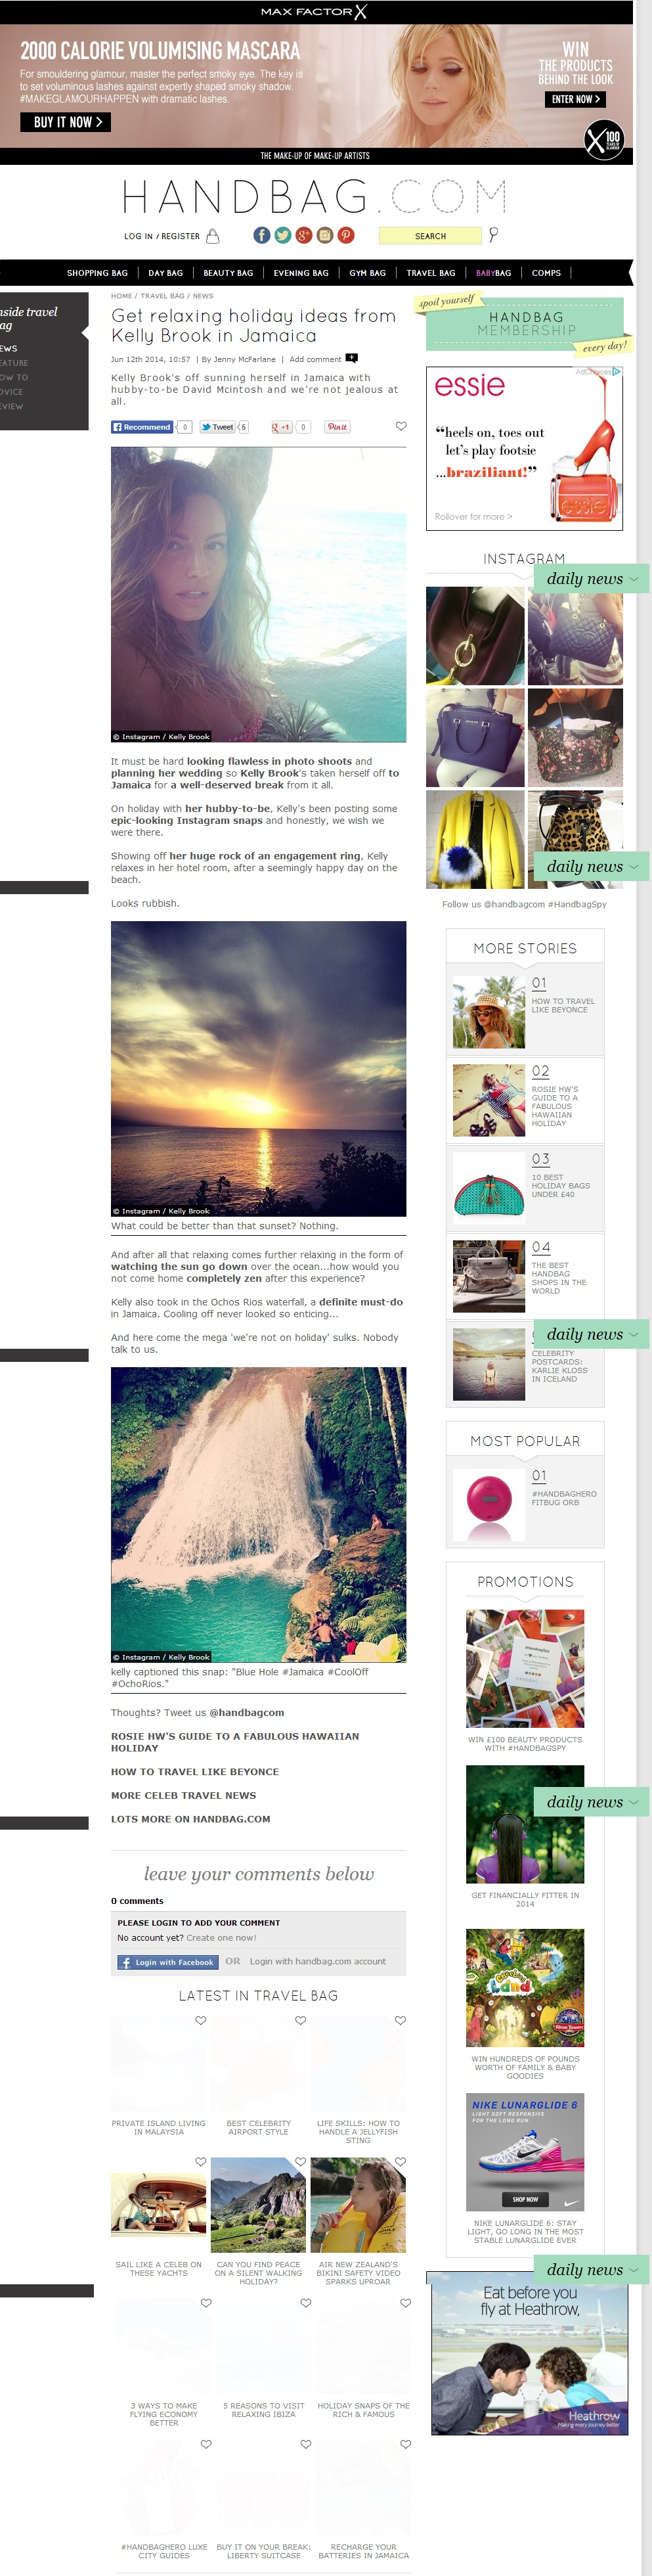 screencapture-www-handbag-com-travel-bag-news-a577212-get-relaxing-holiday-ideas-from-kelly-brook-in-jamaica-html